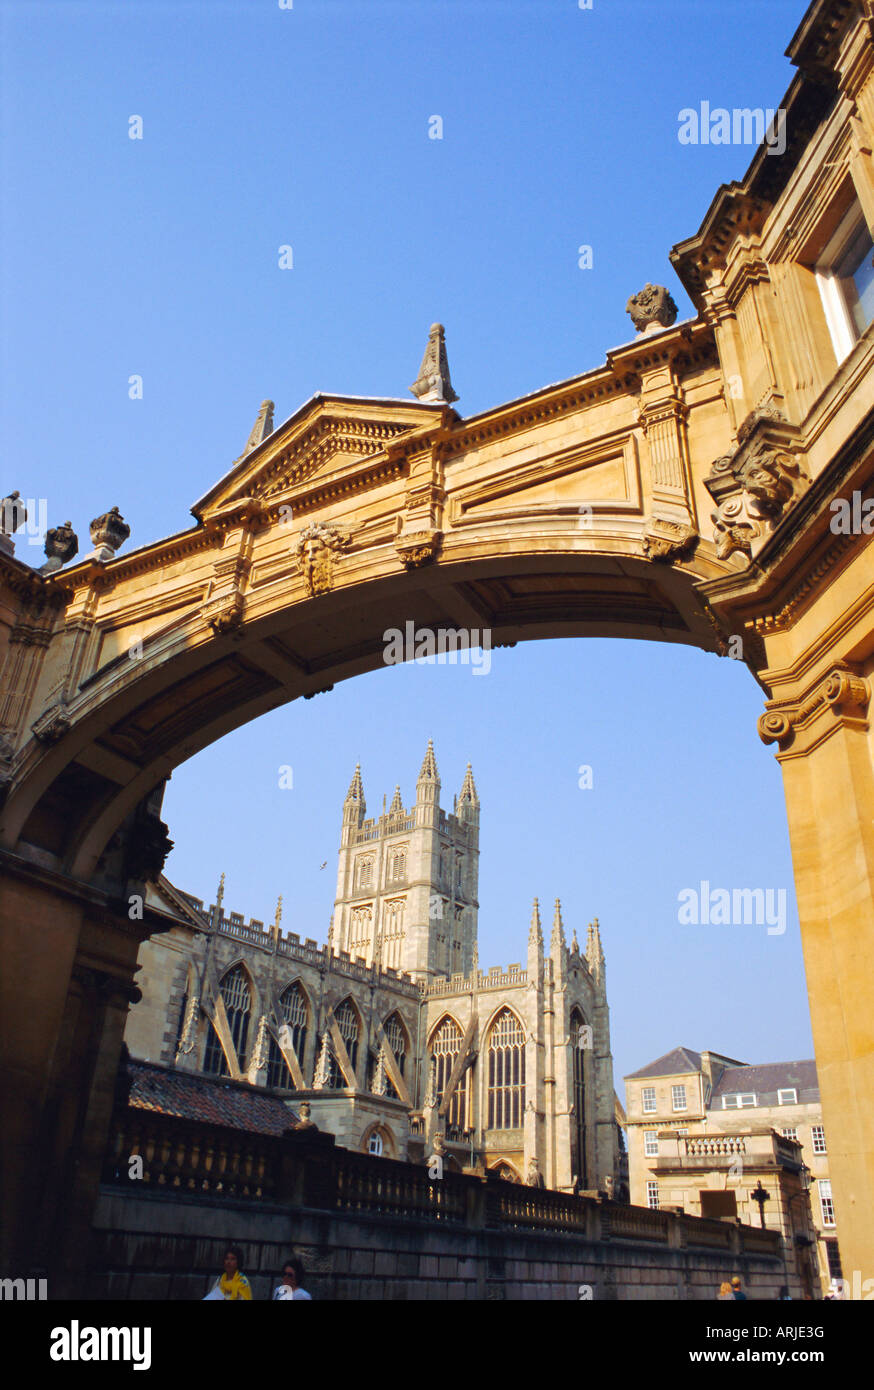 Bath Abbey, Bath, Avon & Somerset, England, UK - Stock Image